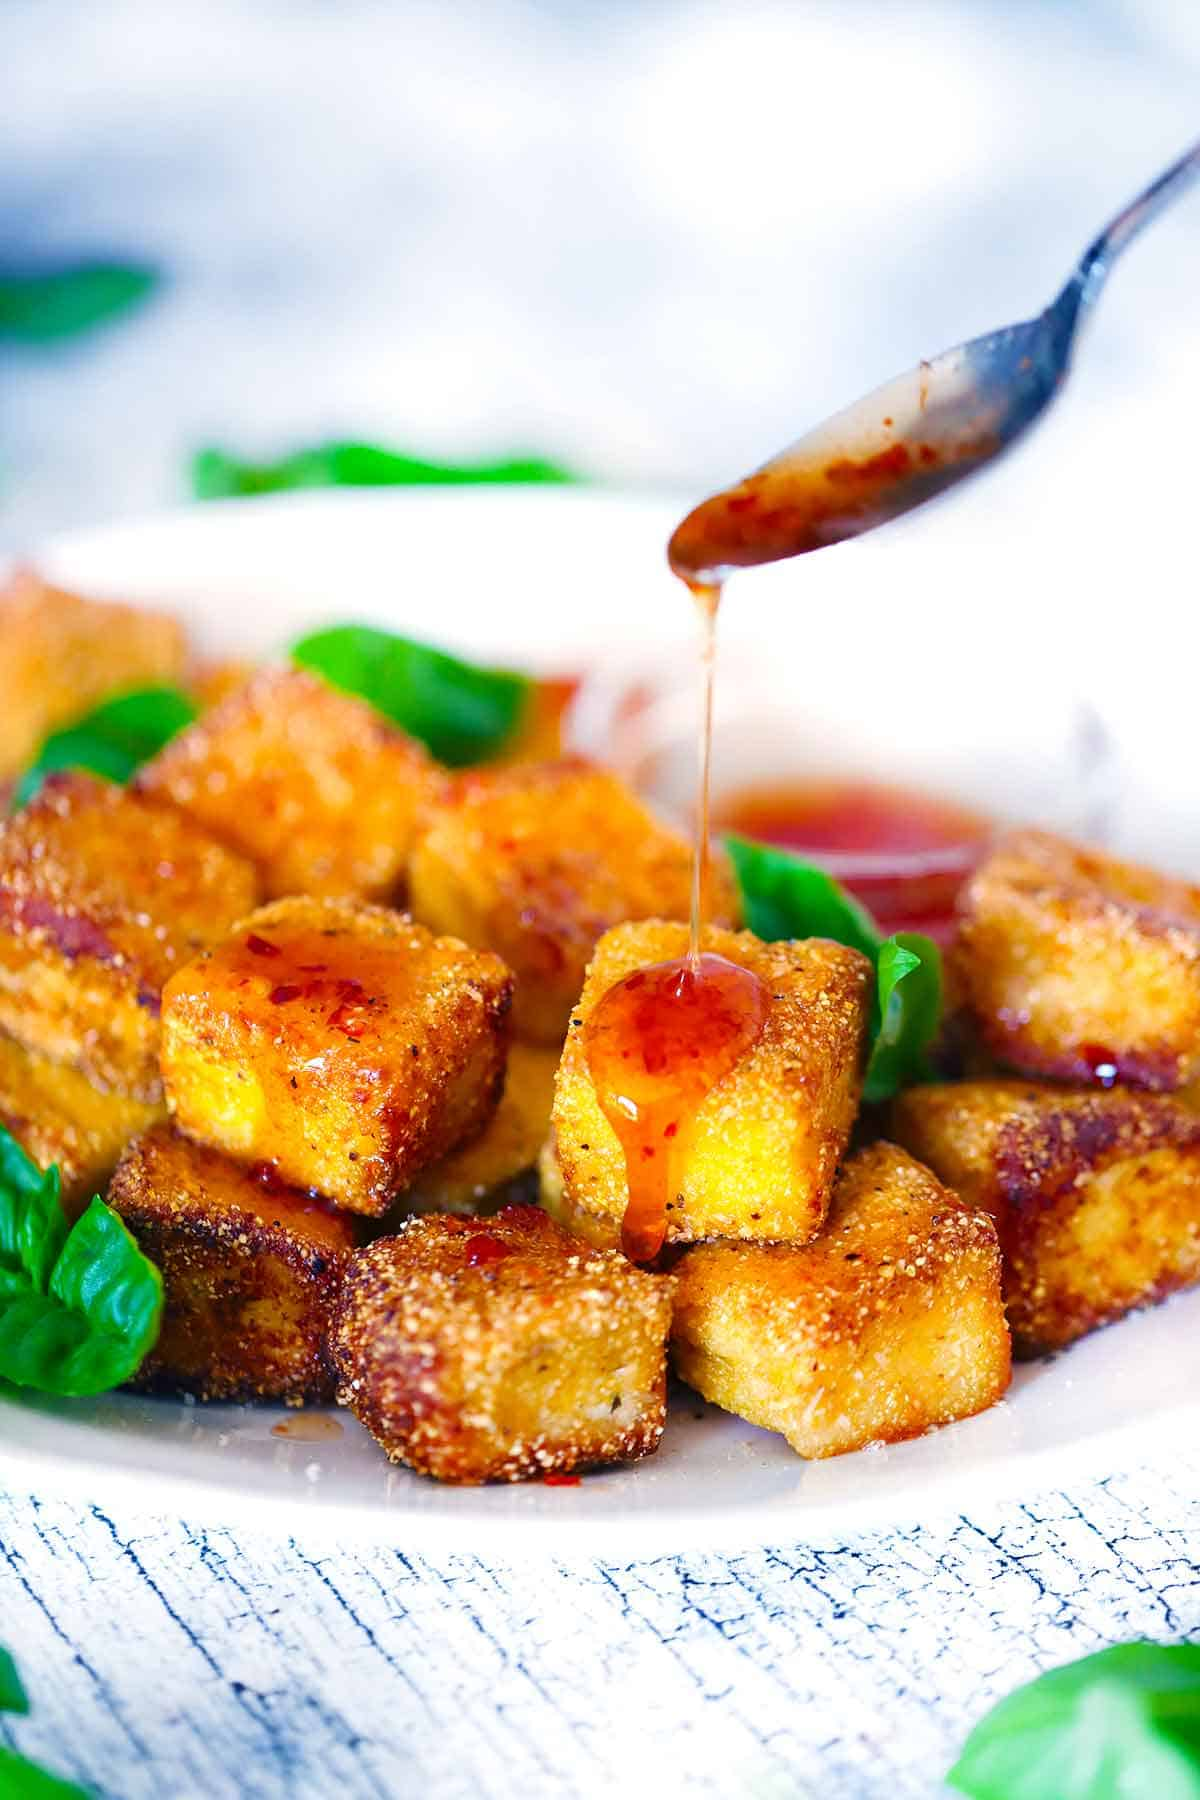 Hot honey being drizzled over a plate of fried halloumi bites.